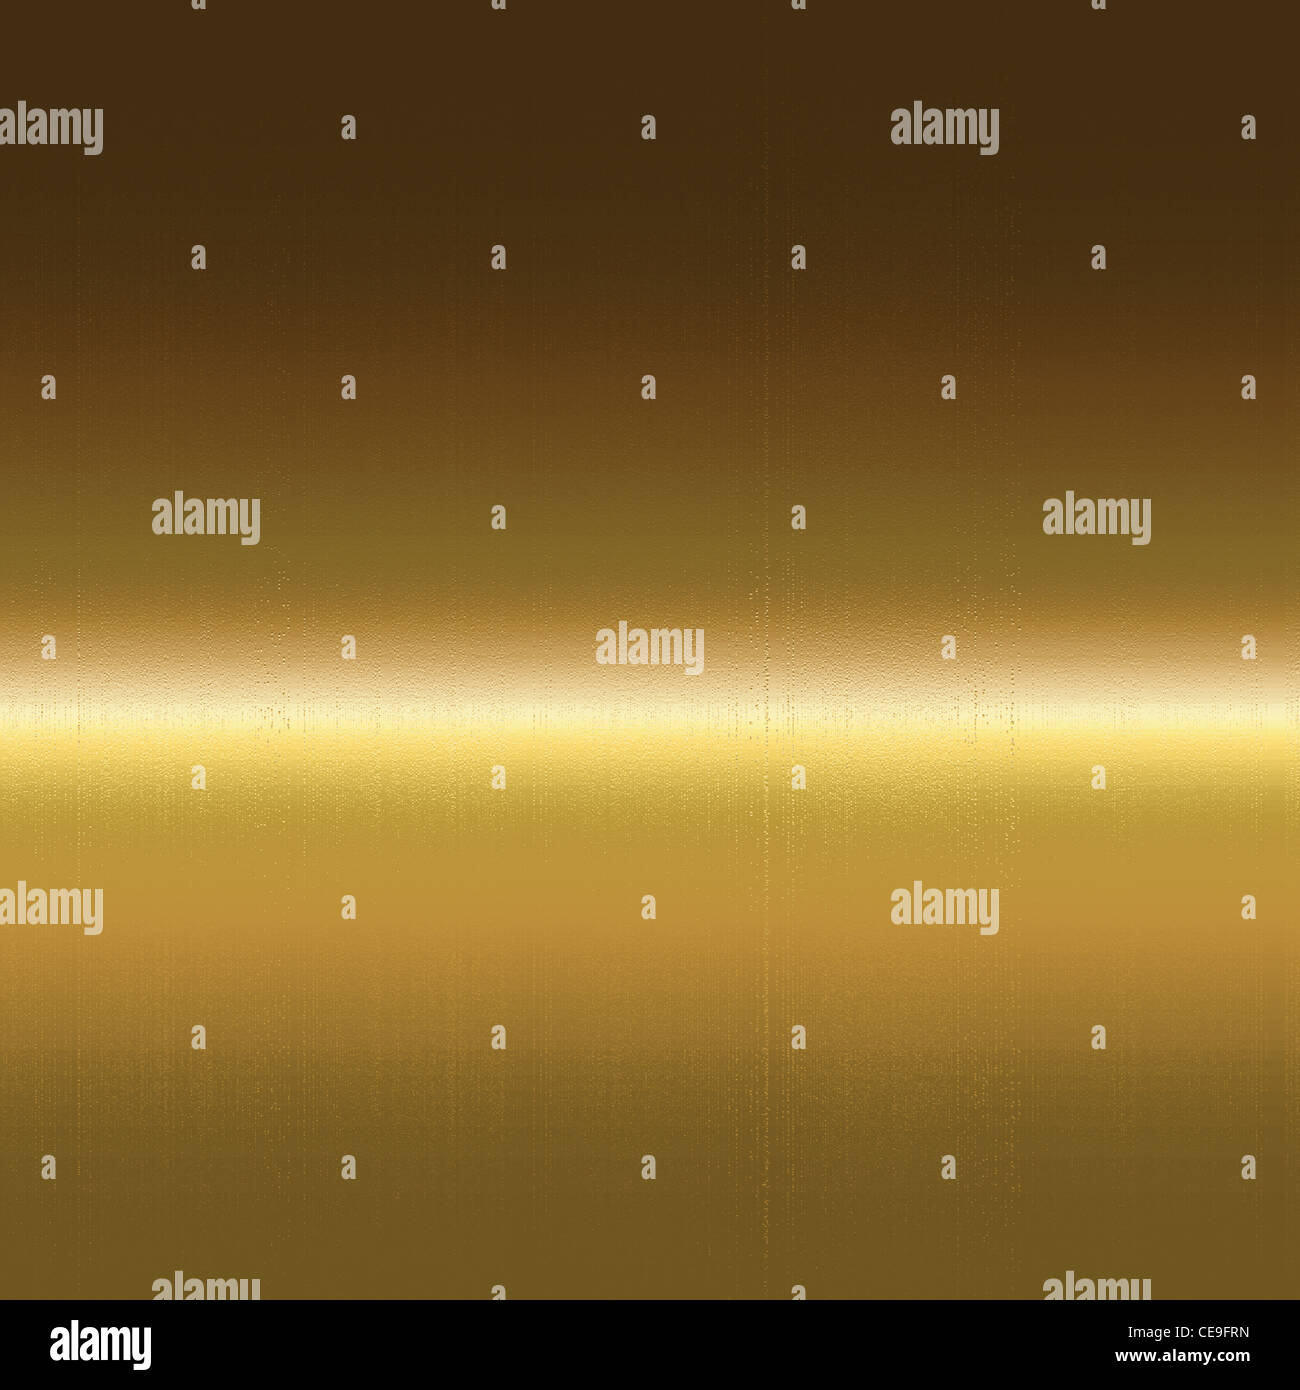 gold metal surface texture, background to insert text or design - Stock Image